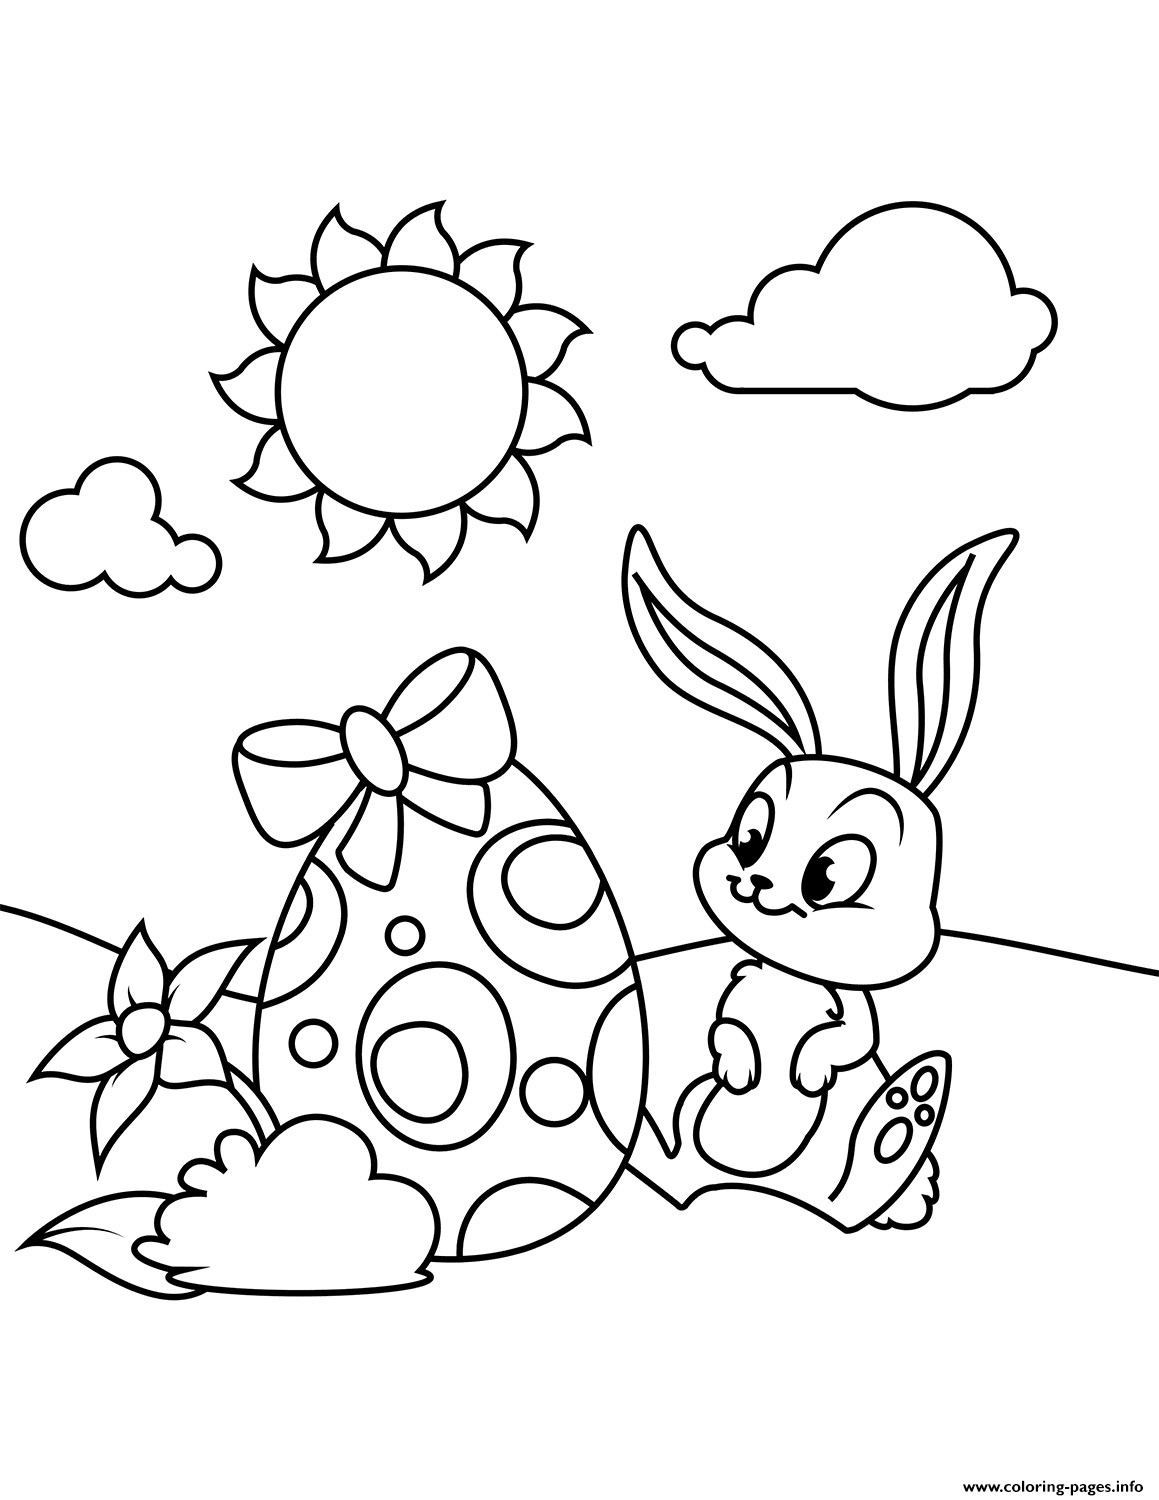 Best ideas about Easter Coloring Pages For Girls . Save or Pin Cute Bunny And Easter Egg Coloring Pages Printable Now.